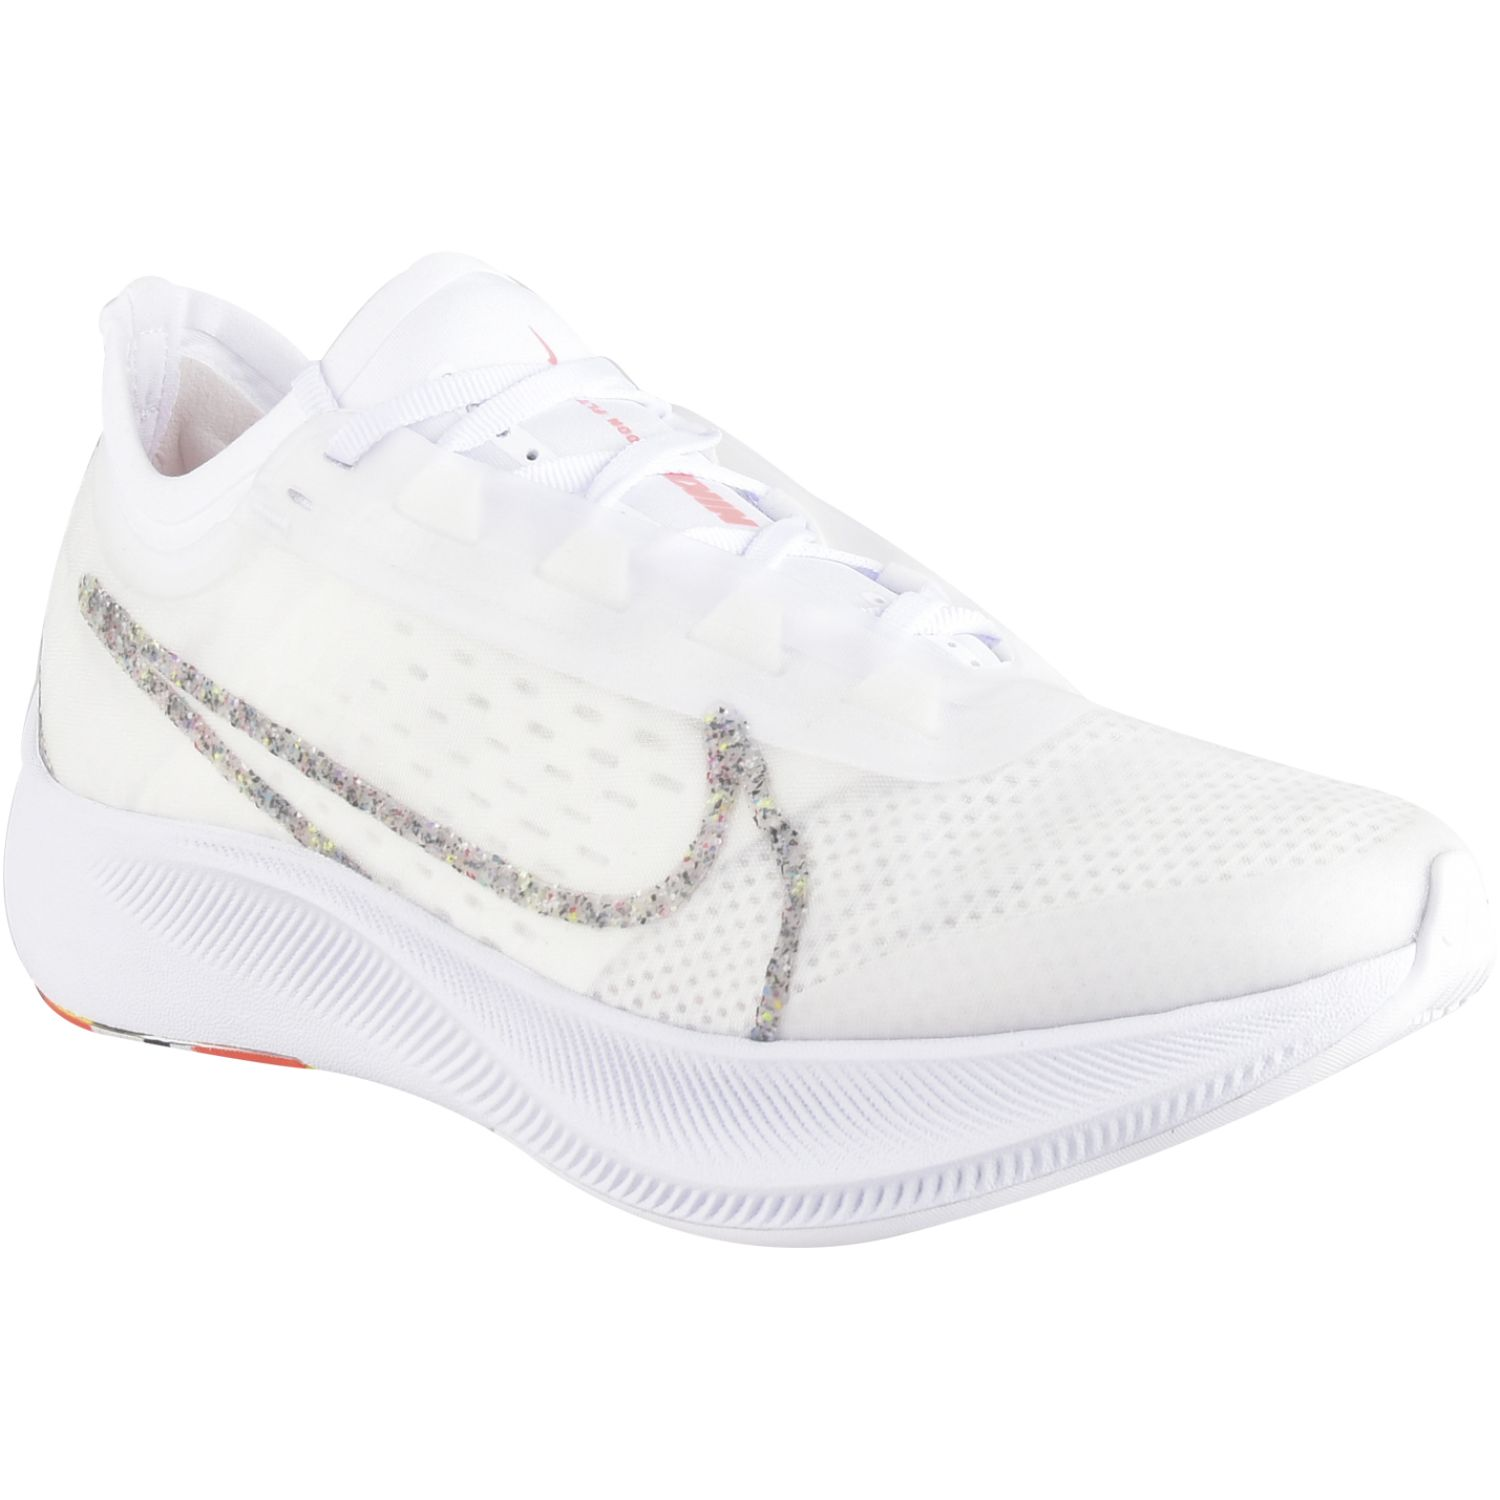 Nike wmns zoom fly 3 aw Blanco Trail Running